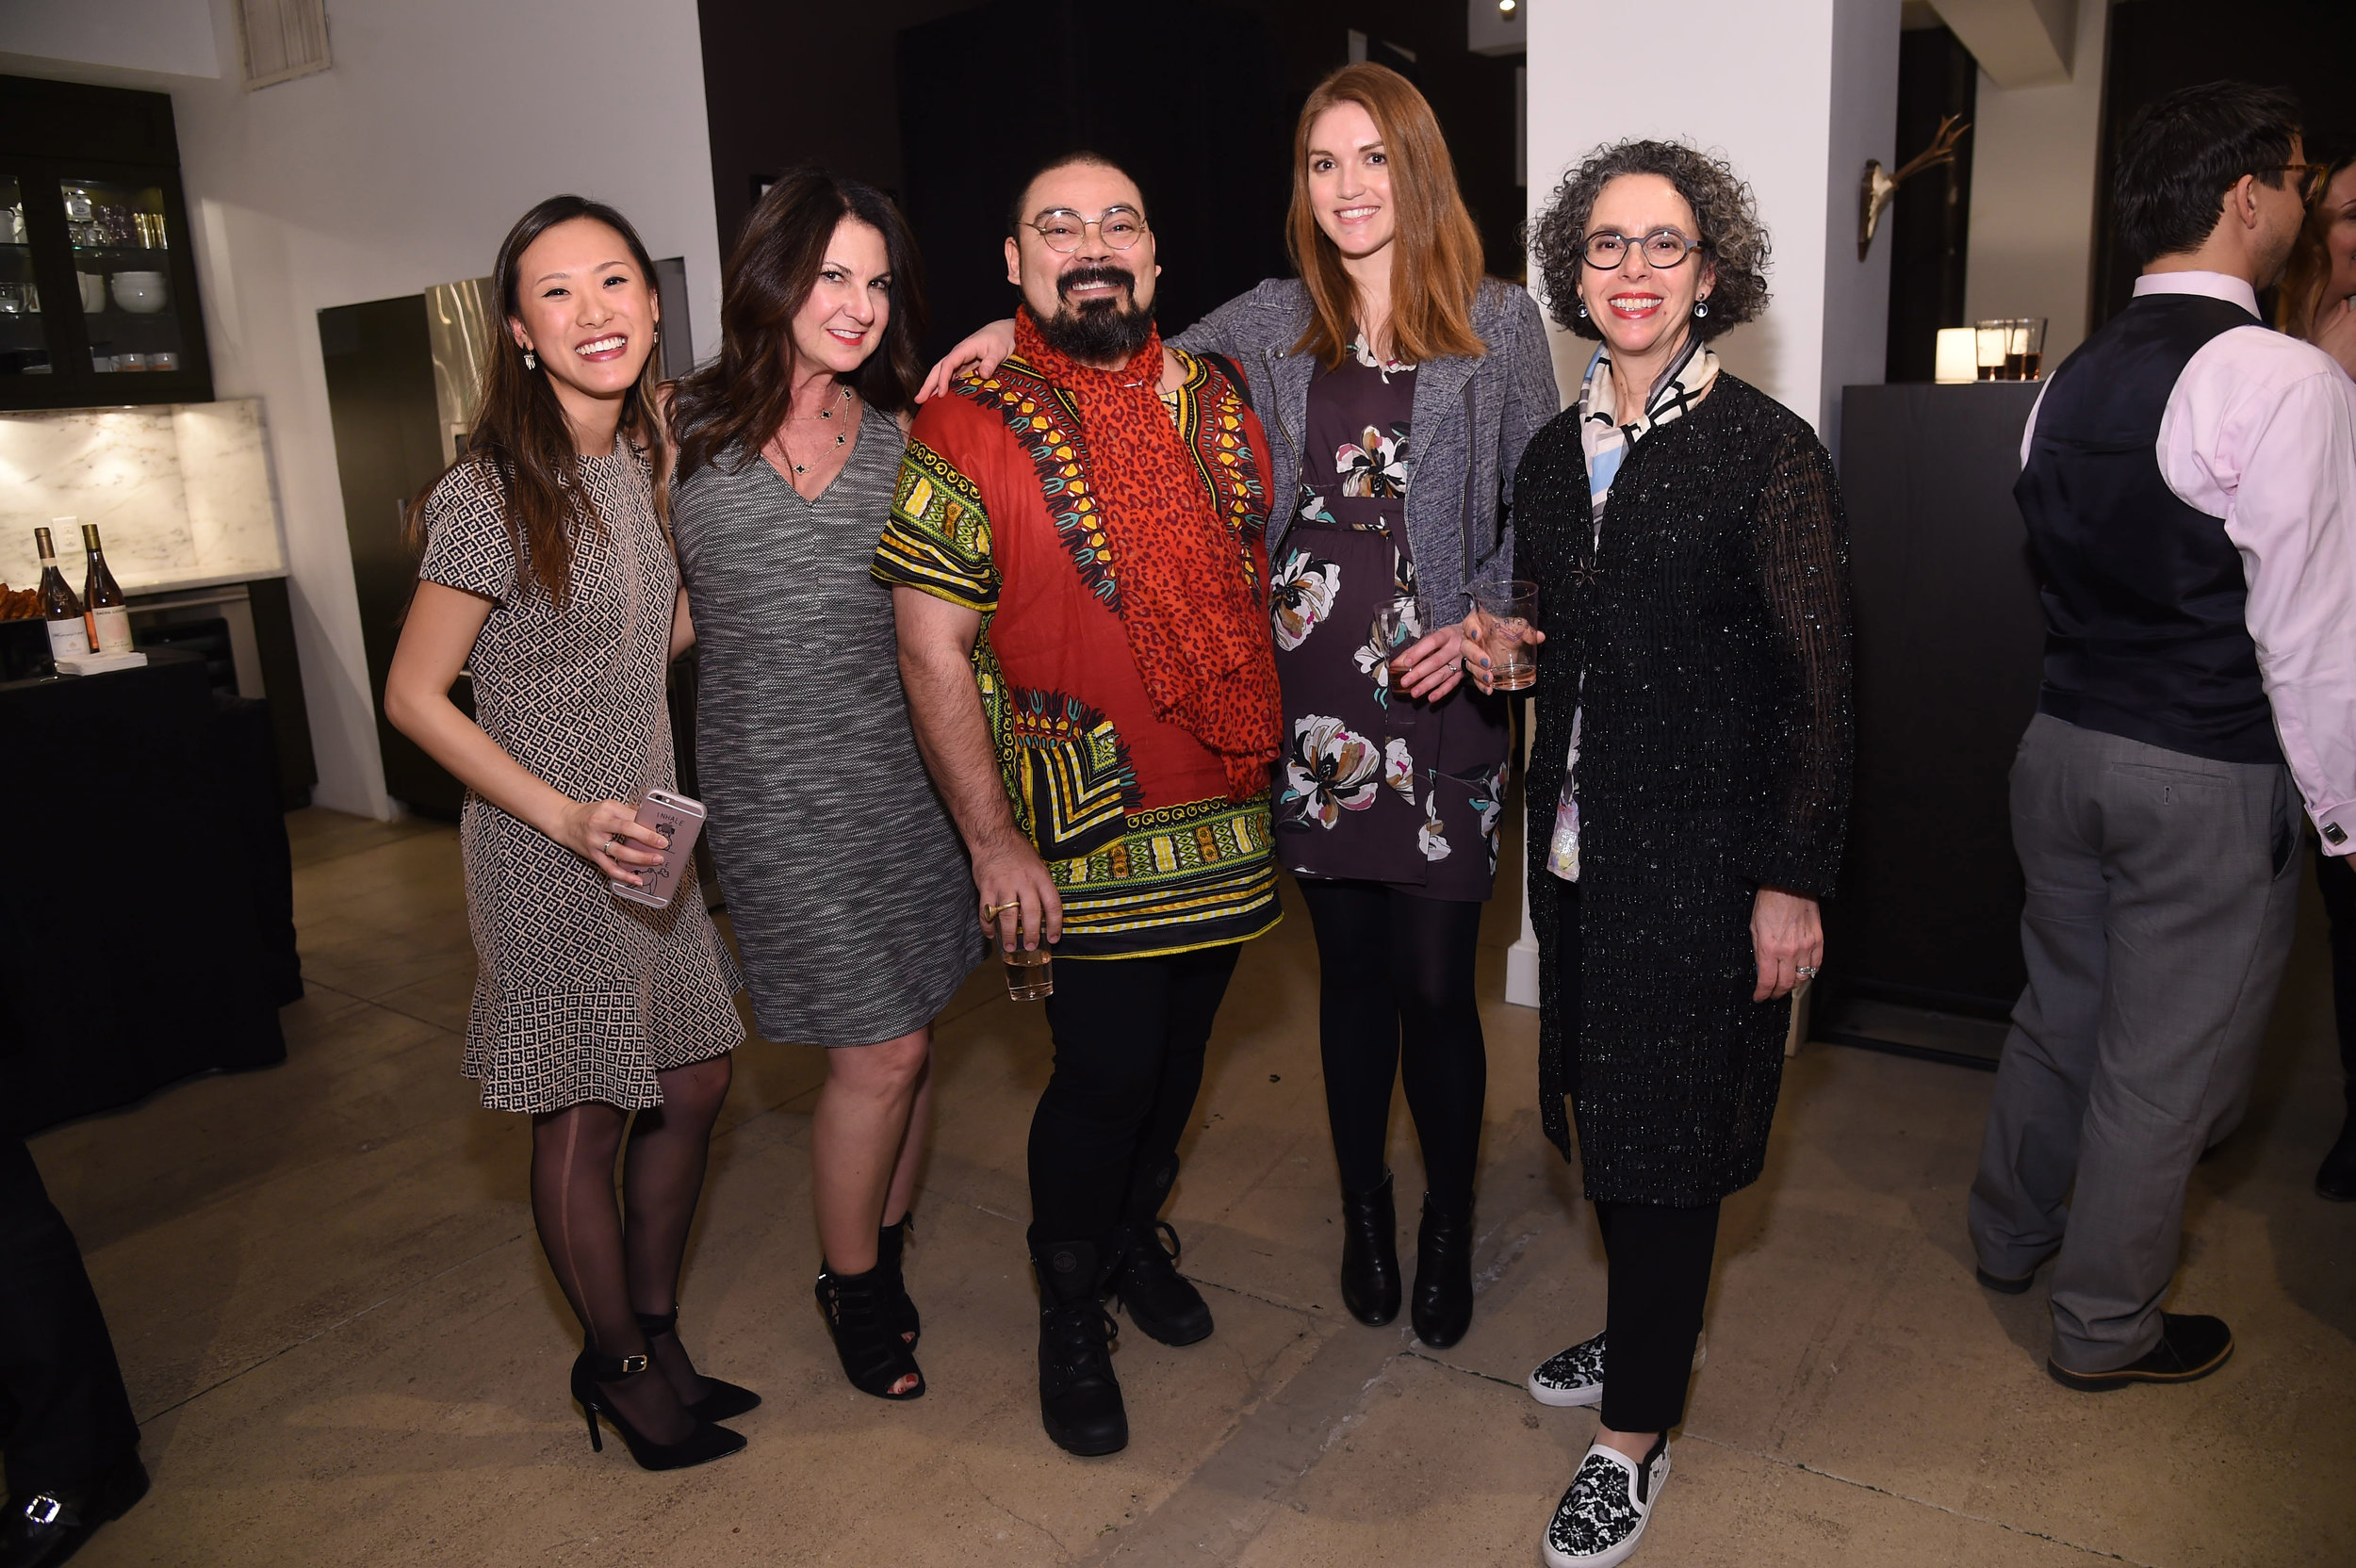 design-on-a-dime-nyc-2017-kick-off-party_33362714795_o.jpg